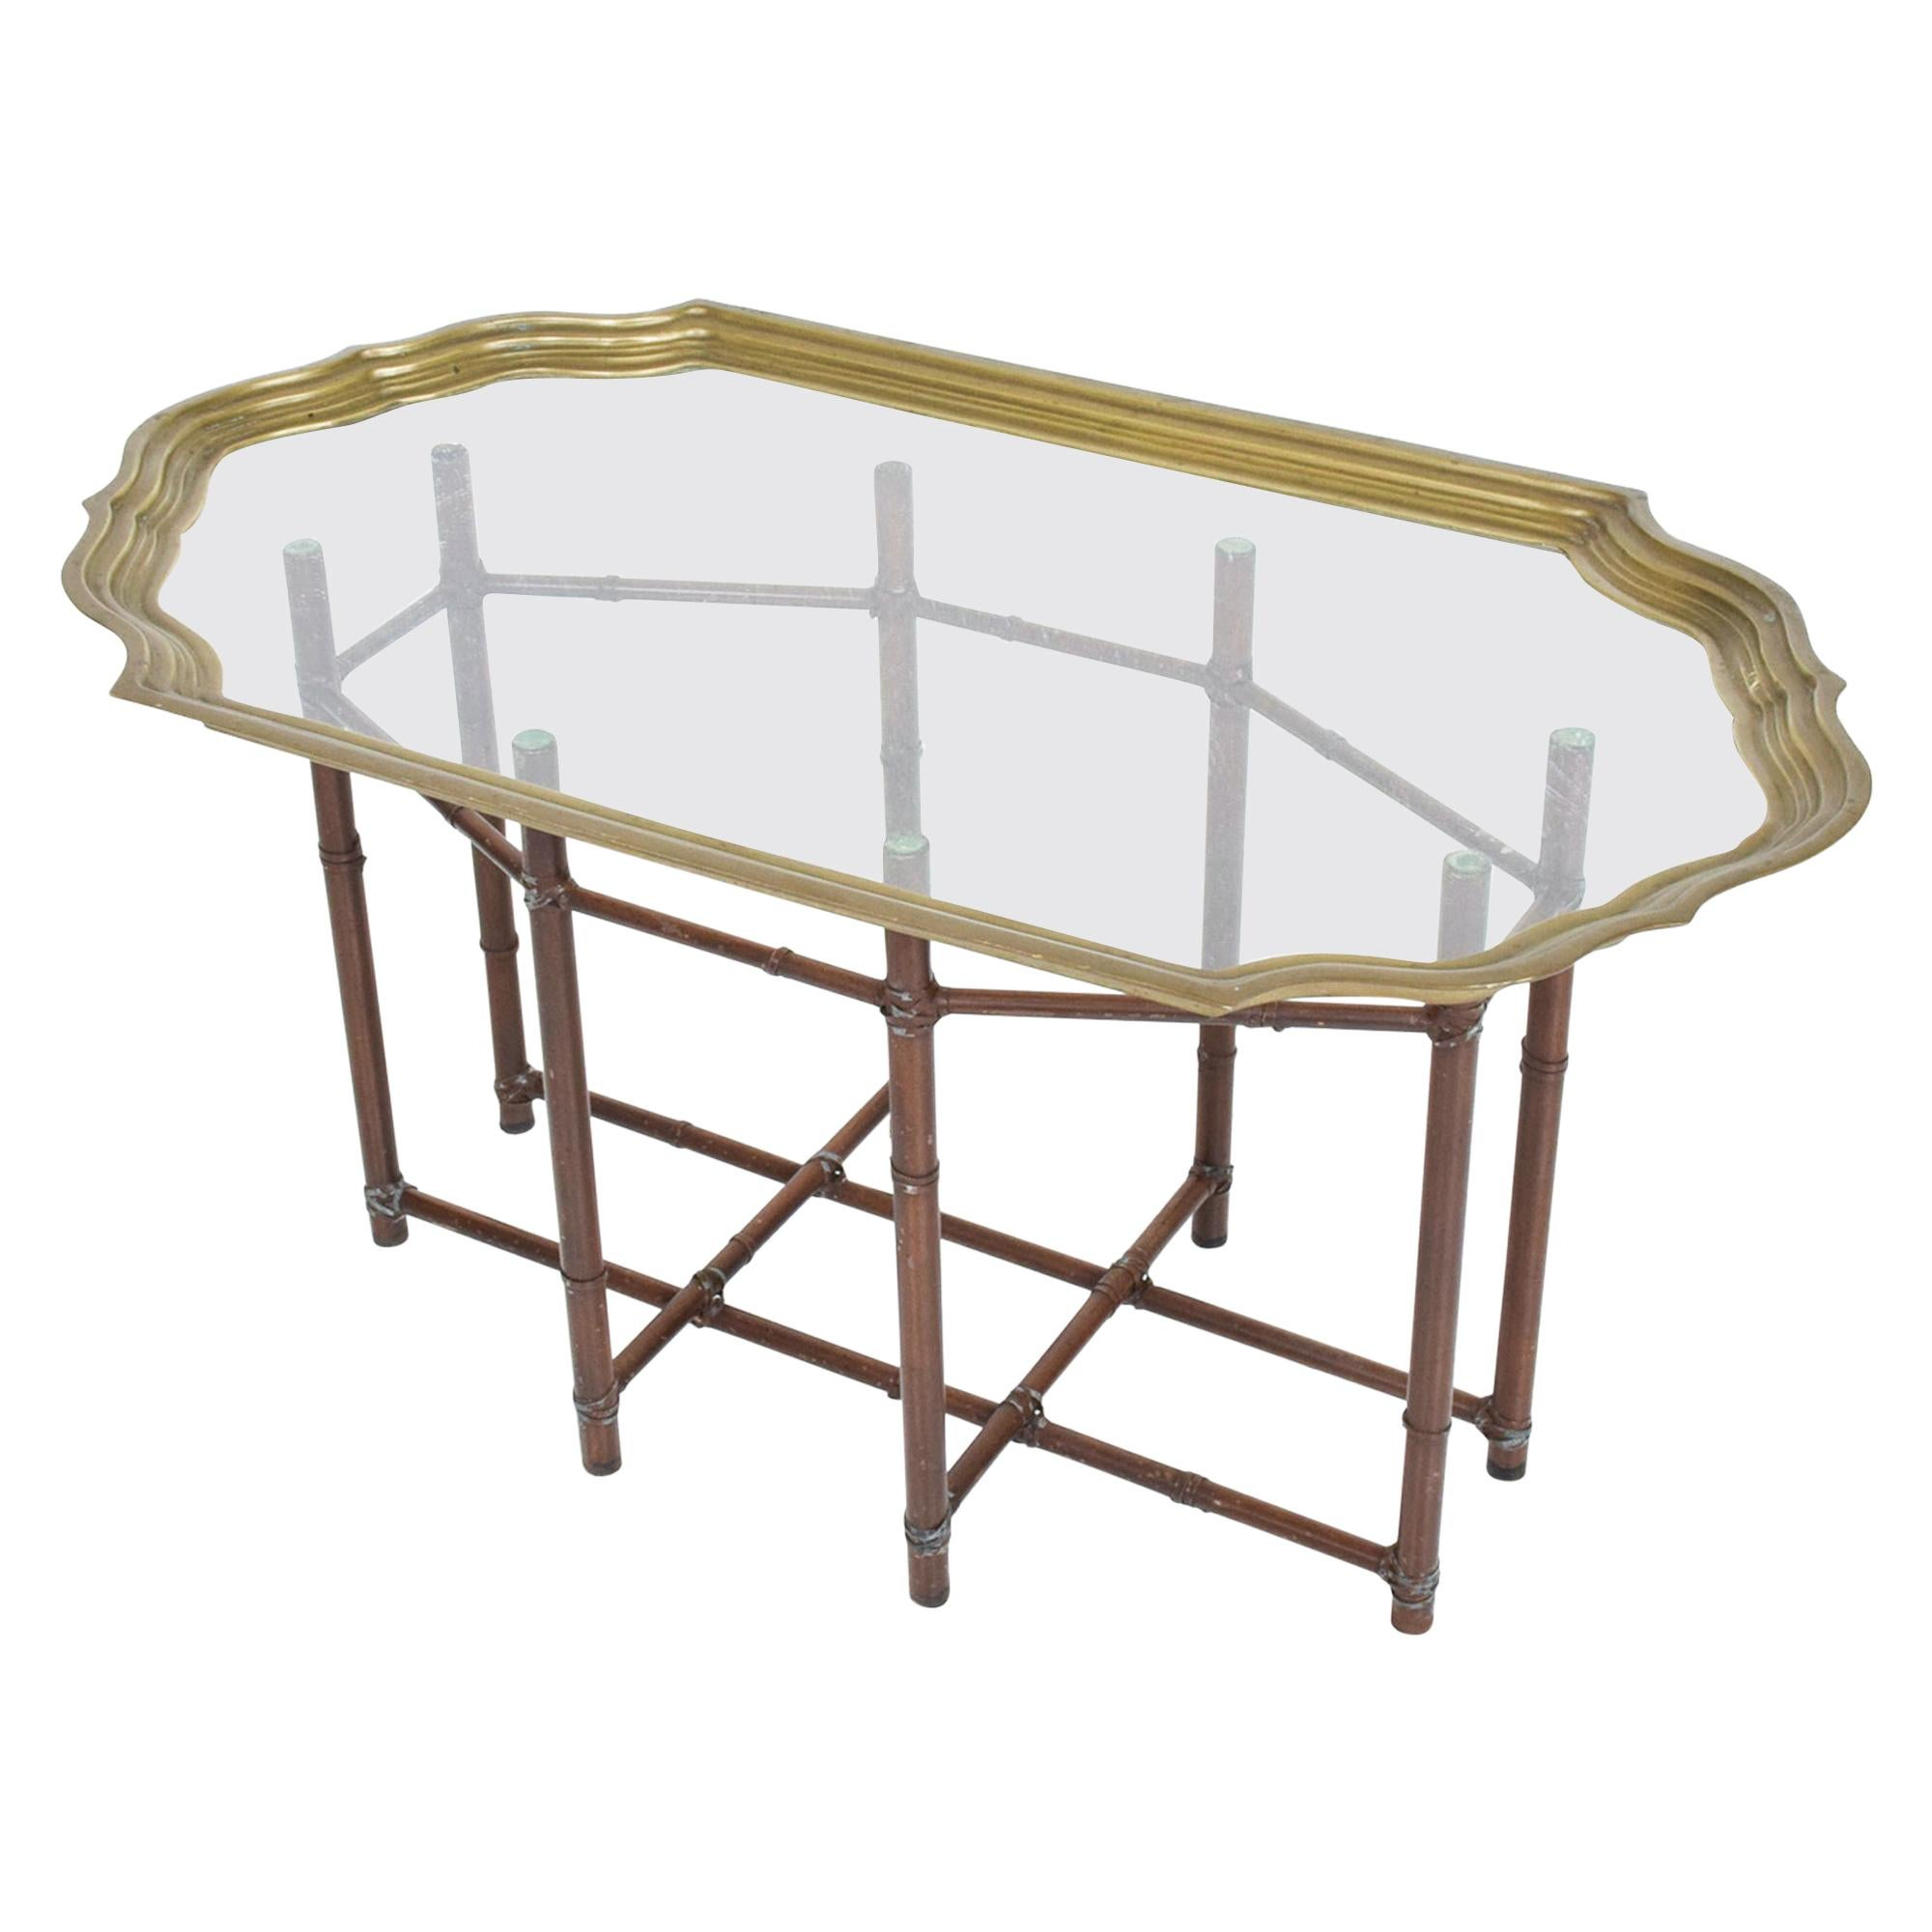 Baker Regency Faux Bamboo Brass & Glass Oval Scalloped Cocktail Table 1970s